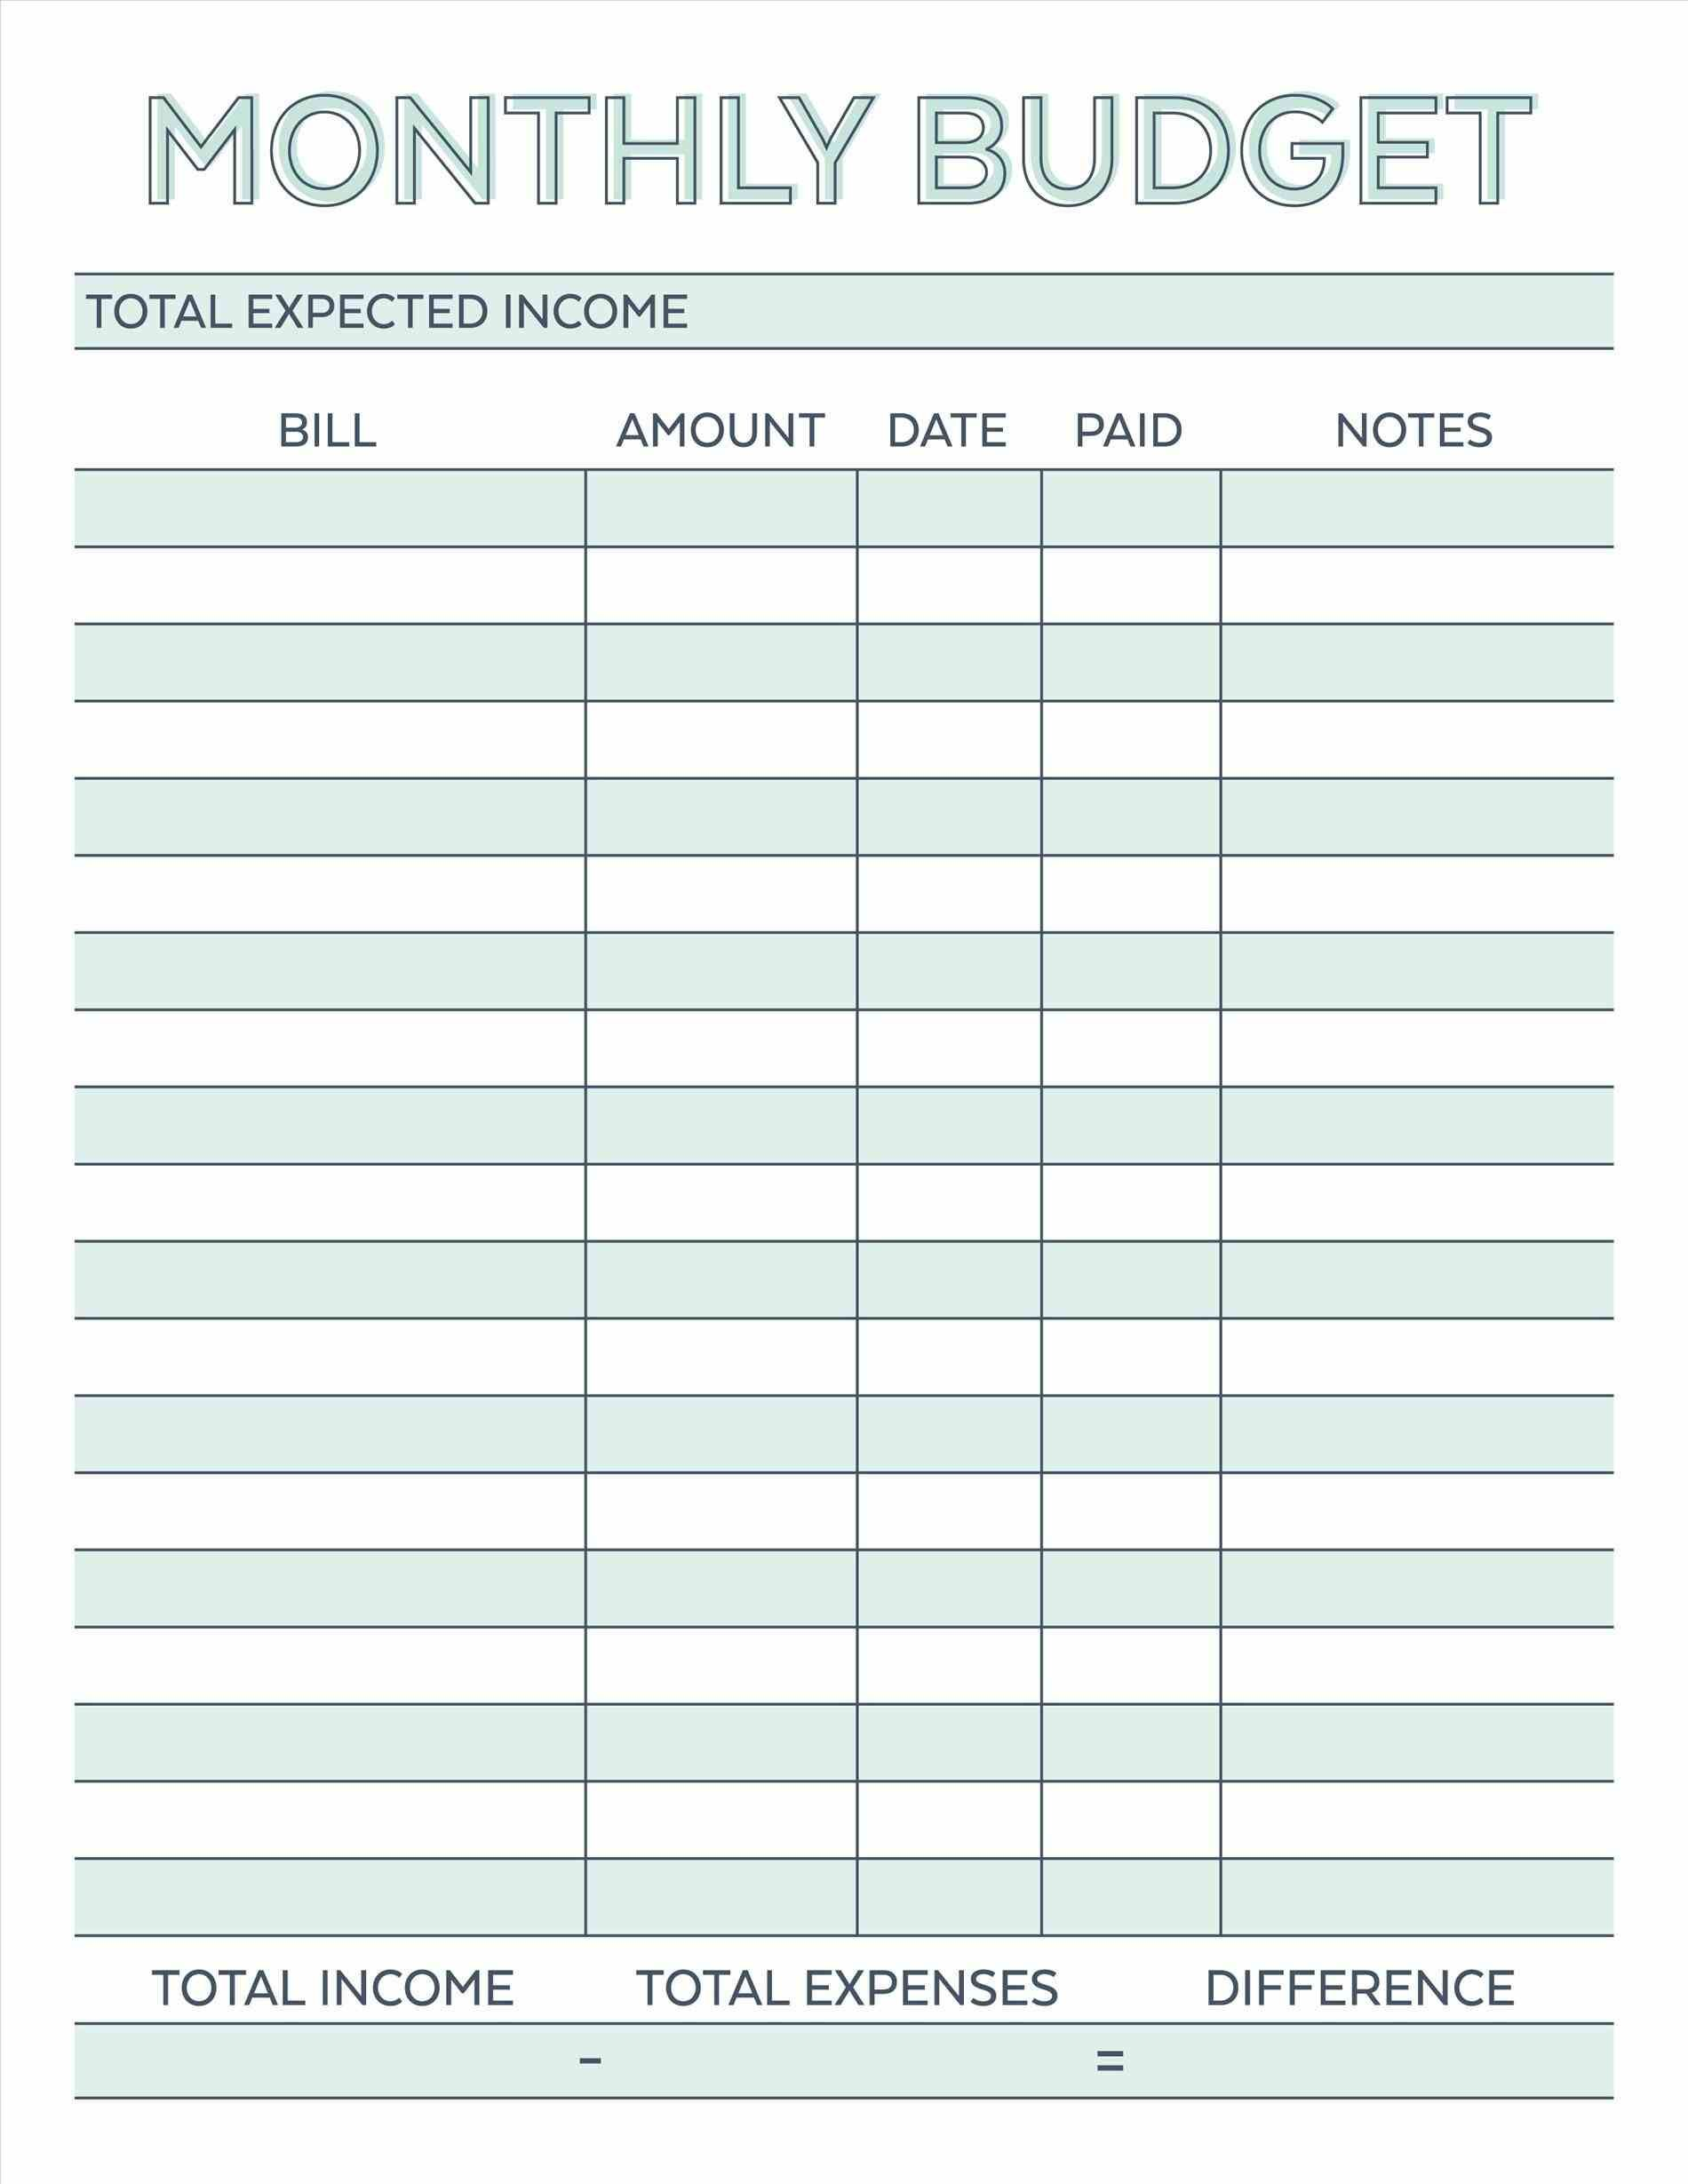 Budget Planner planner worksheet monthly bills template free ...